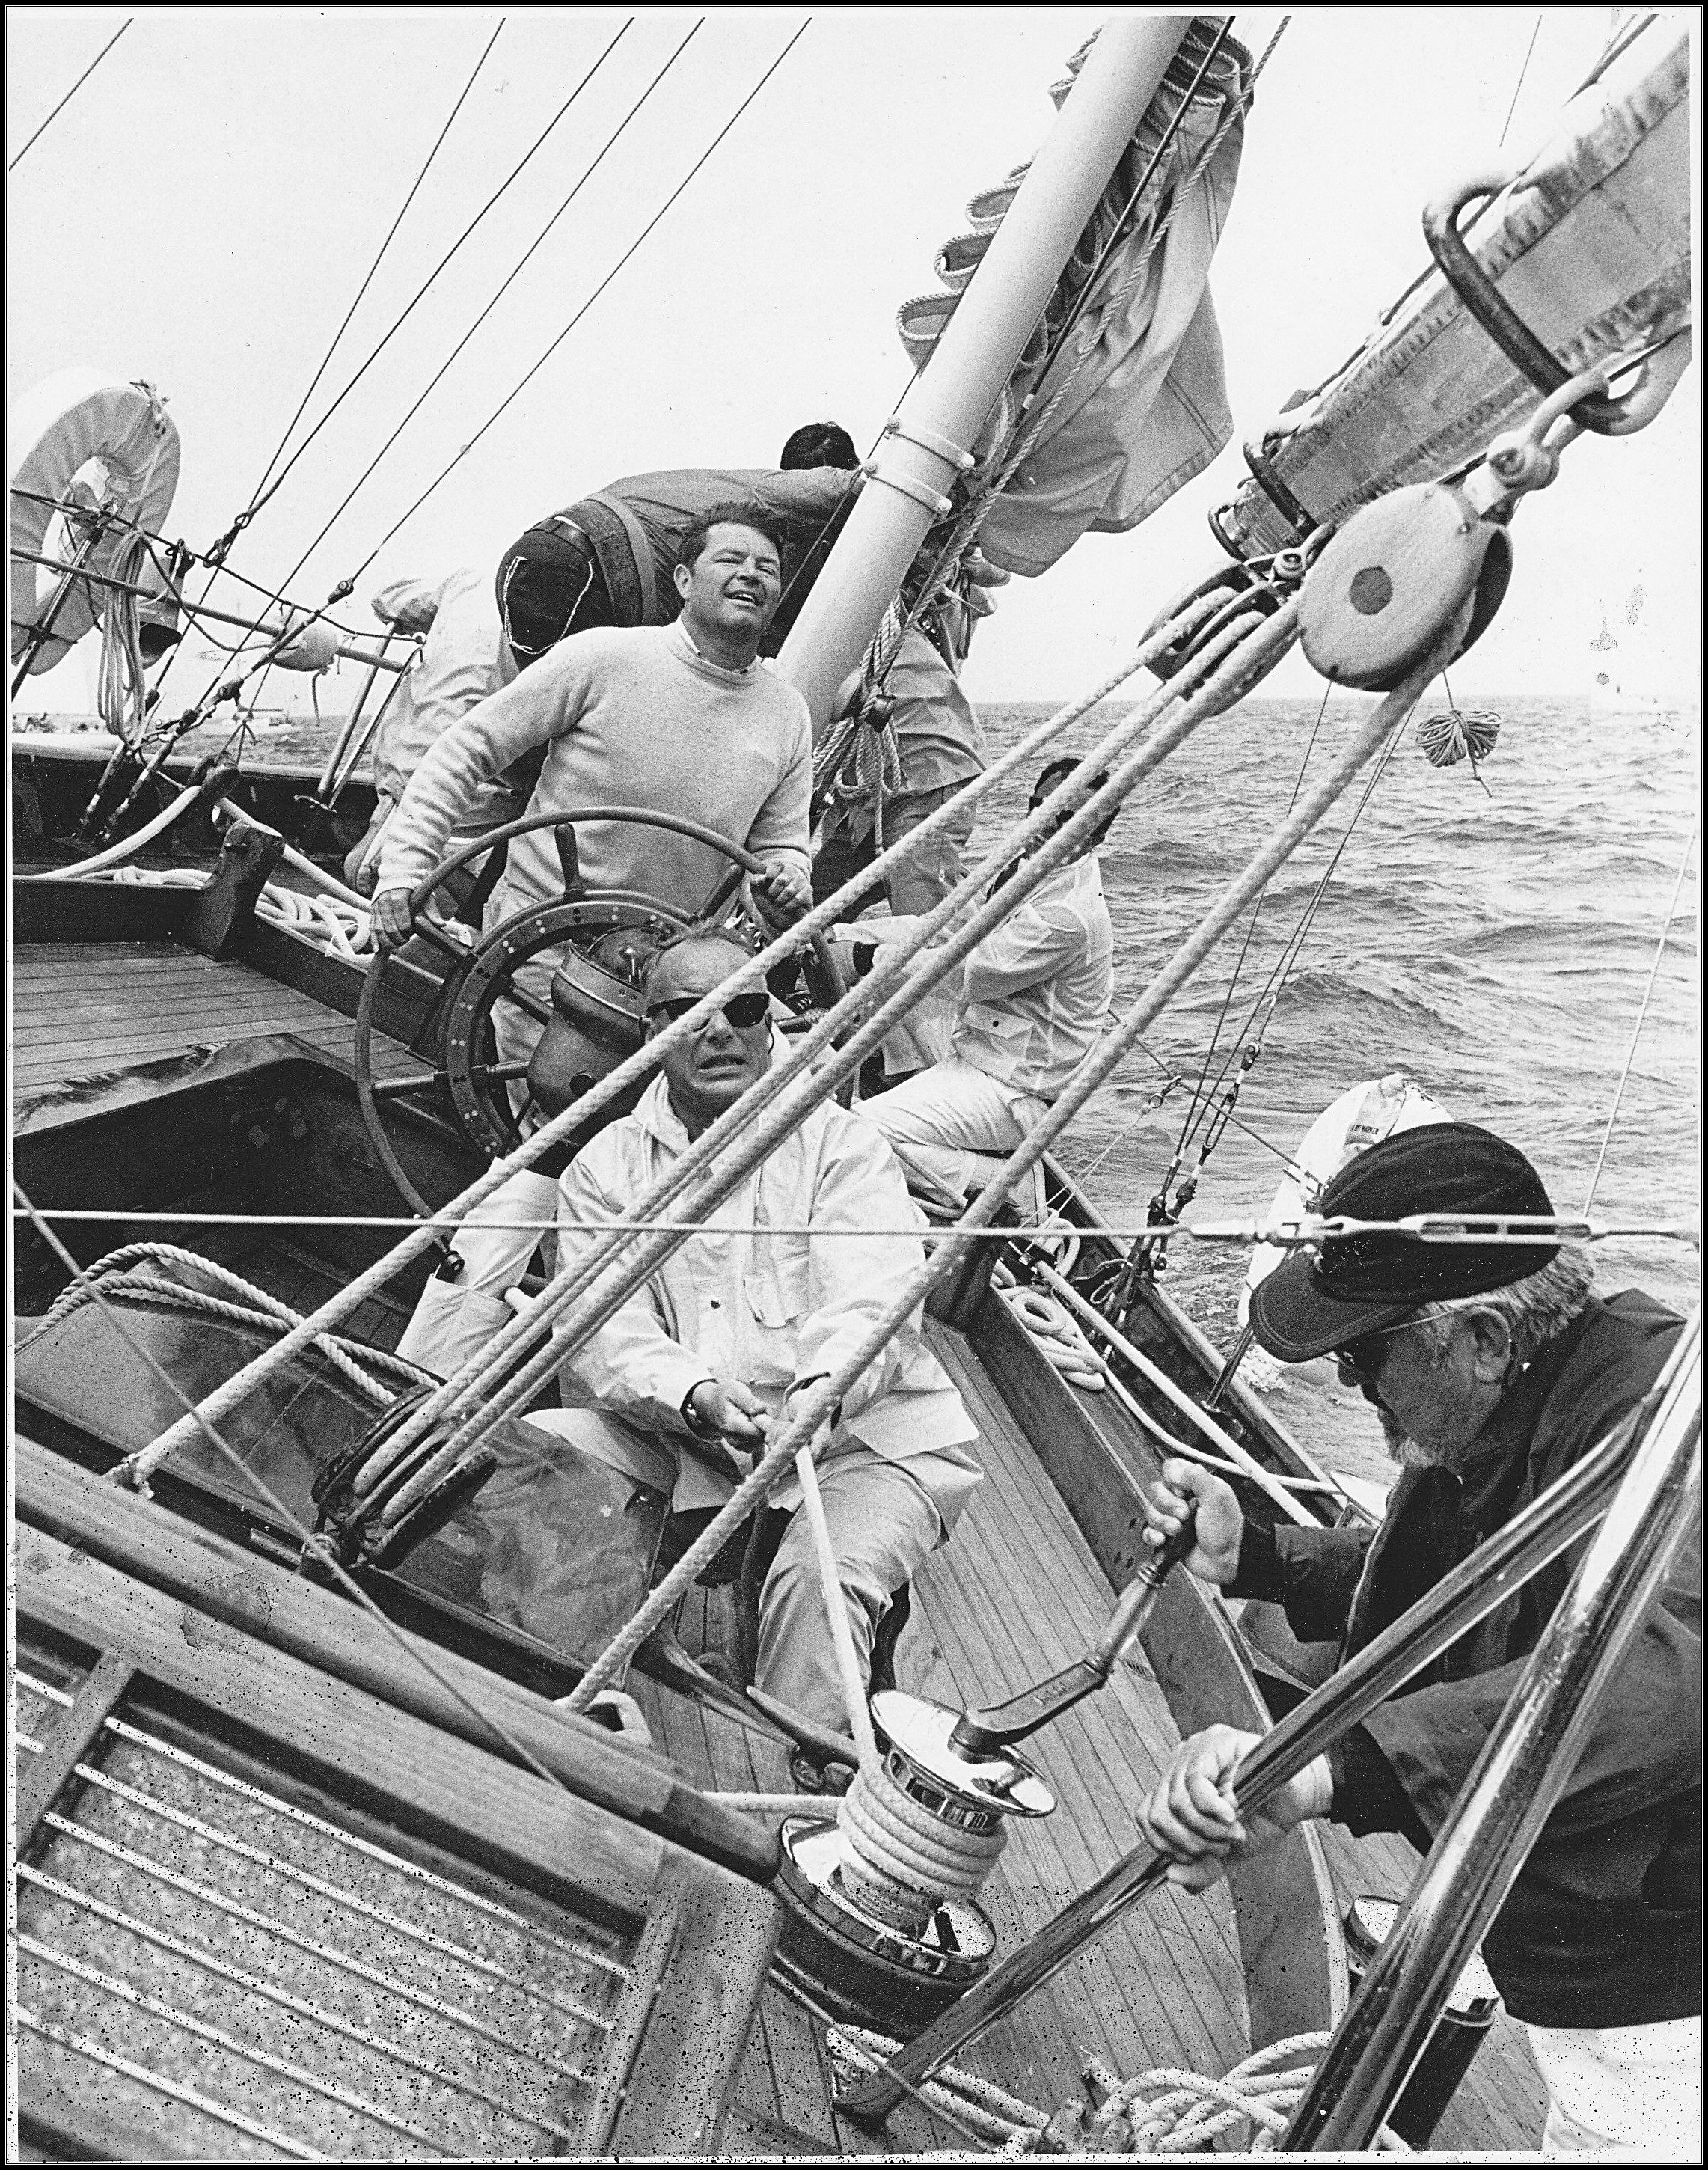 photo of sailboat Windigo with B. Lowry at the helm and C. Bissell operating the winch.